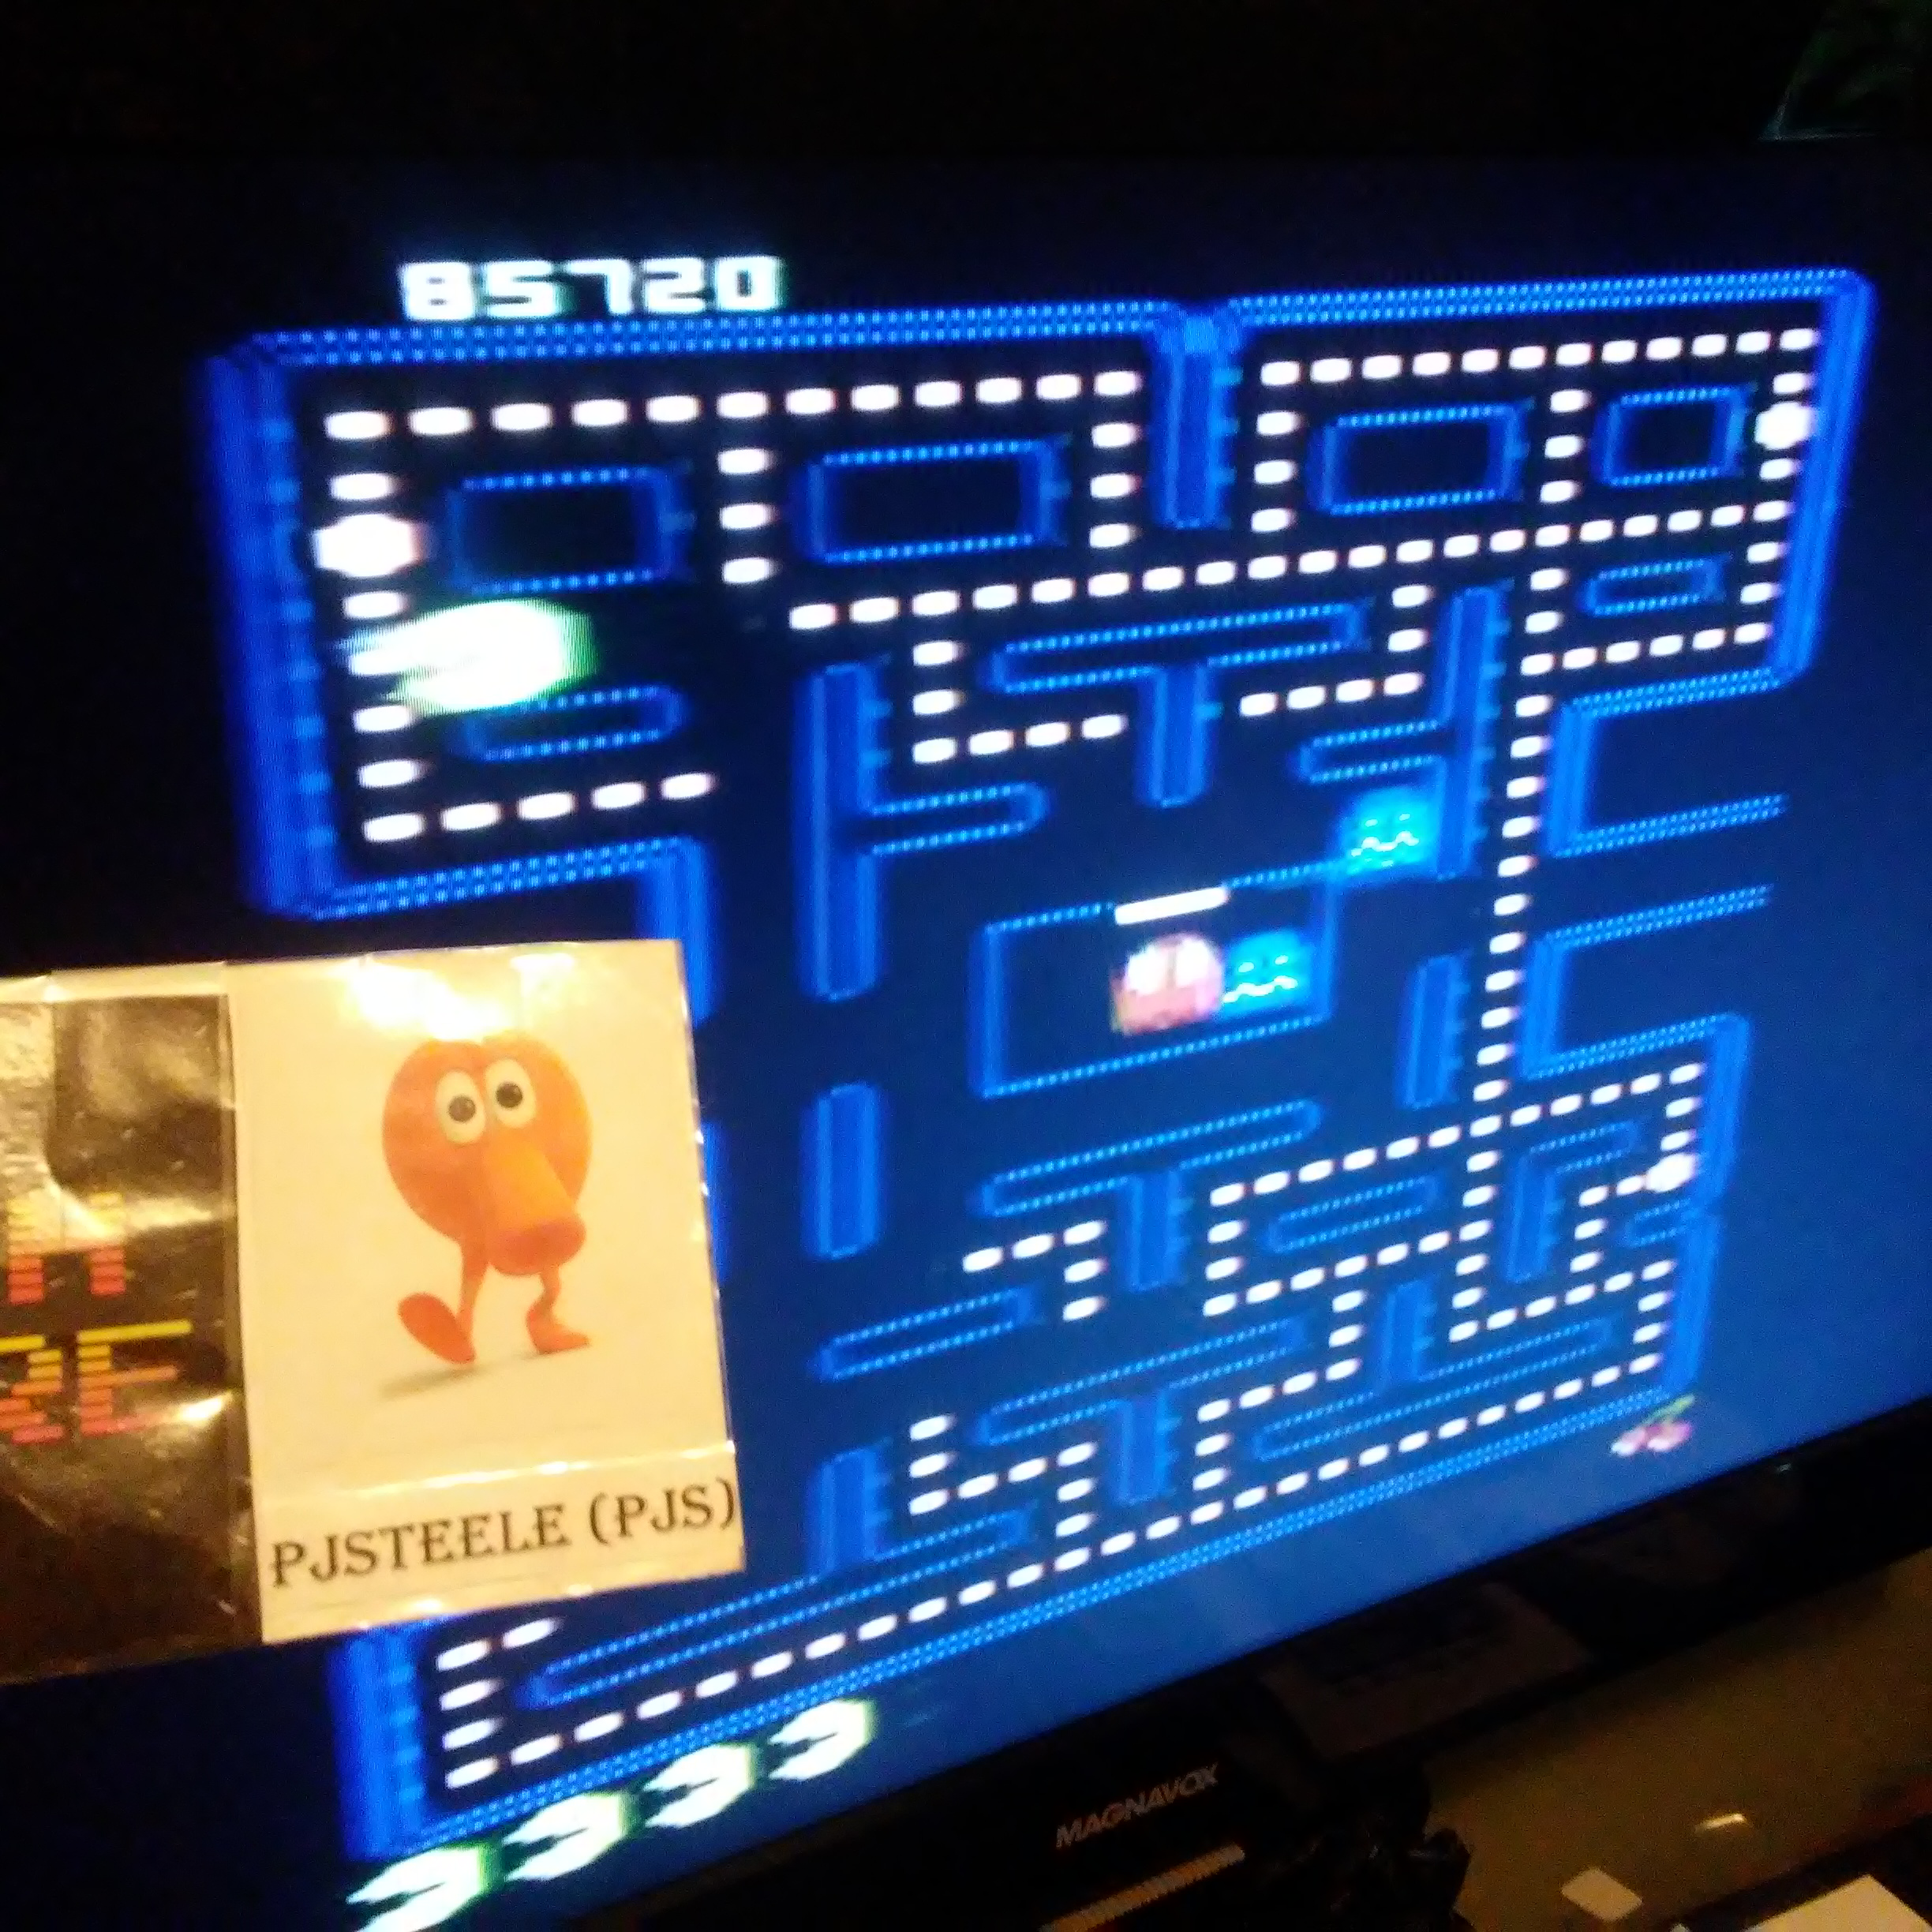 Pjsteele: Pac-Man Collection: Pac-Man [Cherries/Plus Off/Fast On/5 Lives] (Atari 7800) 85,720 points on 2018-09-10 16:54:58